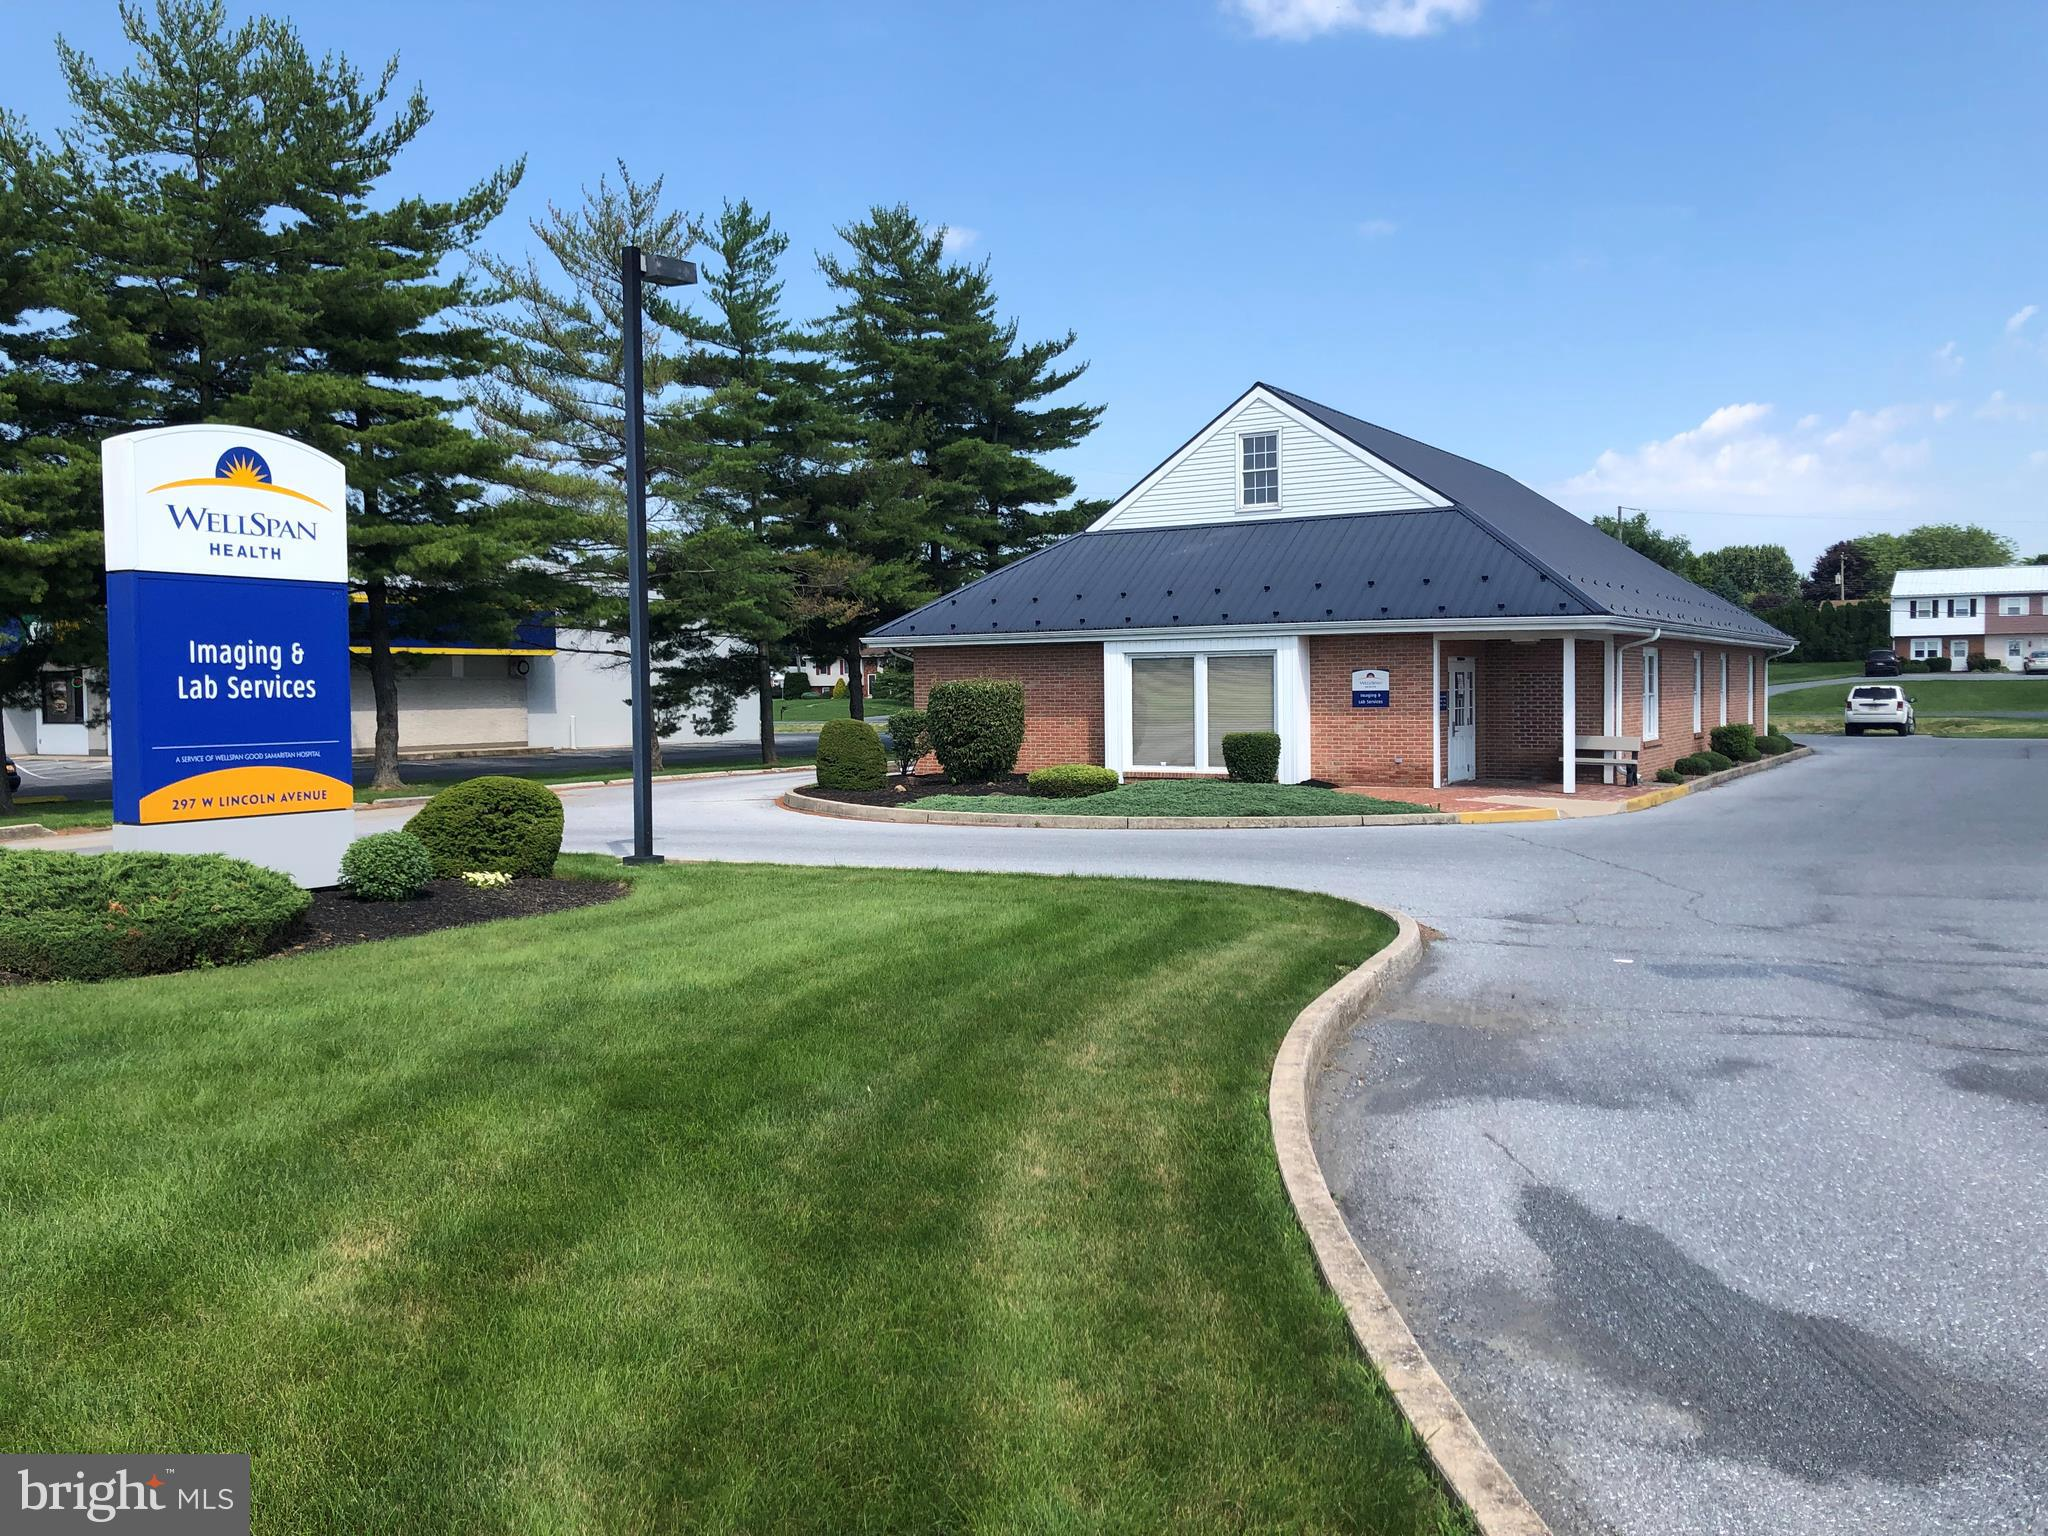 297 W LINCOLN AVENUE, MYERSTOWN, PA 17067